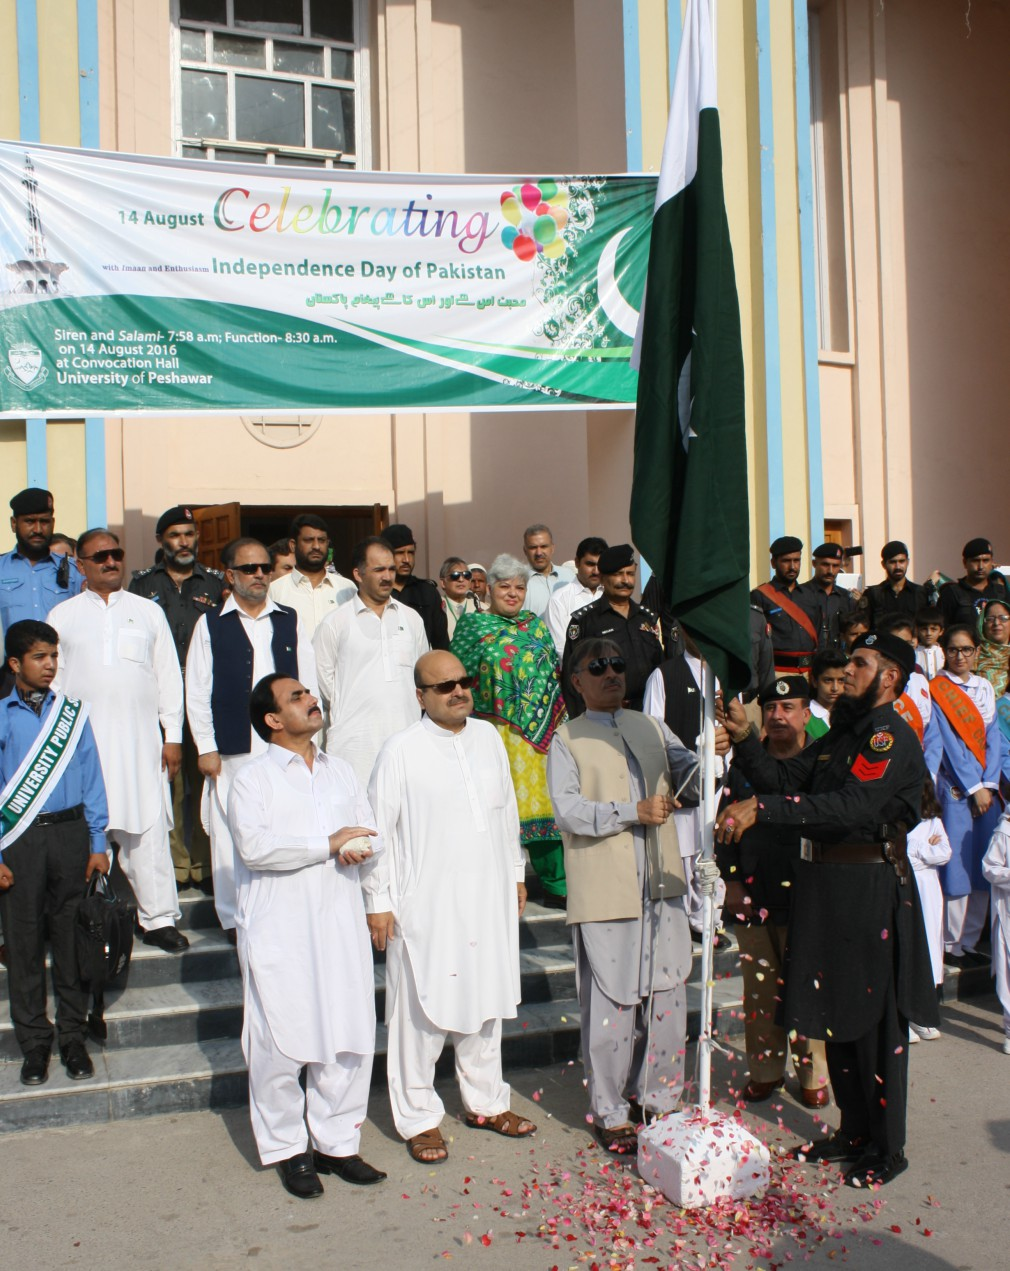 Vice Chancellor UoP Prof. Dr. Muhammad Rasul Jan Hoisting National Flag on the Independence Day of Pakistan at the University of Peshawar